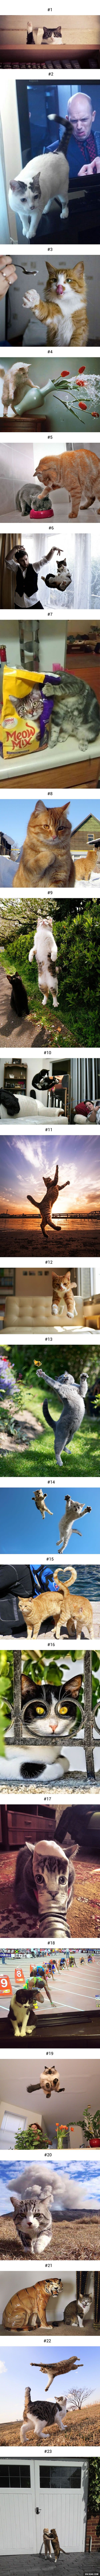 23 Purrfectly-Timed Cat Photos For